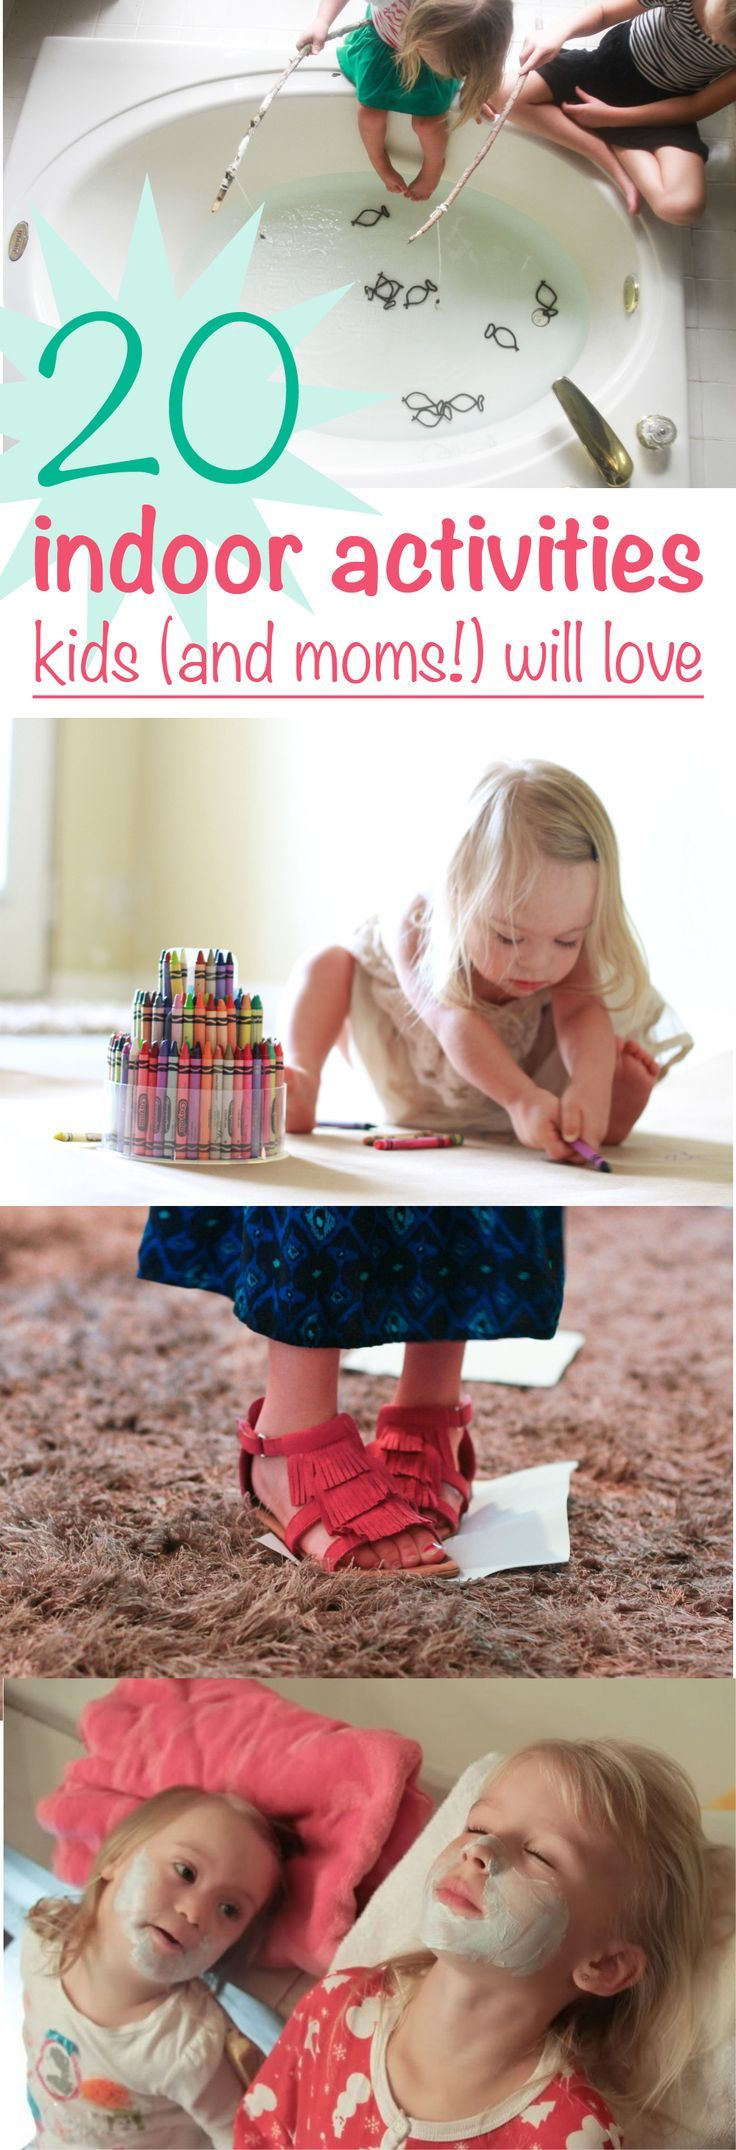 20 indoor activities for these cold winter days the kids will love, and you will too! www.ehow.com/...